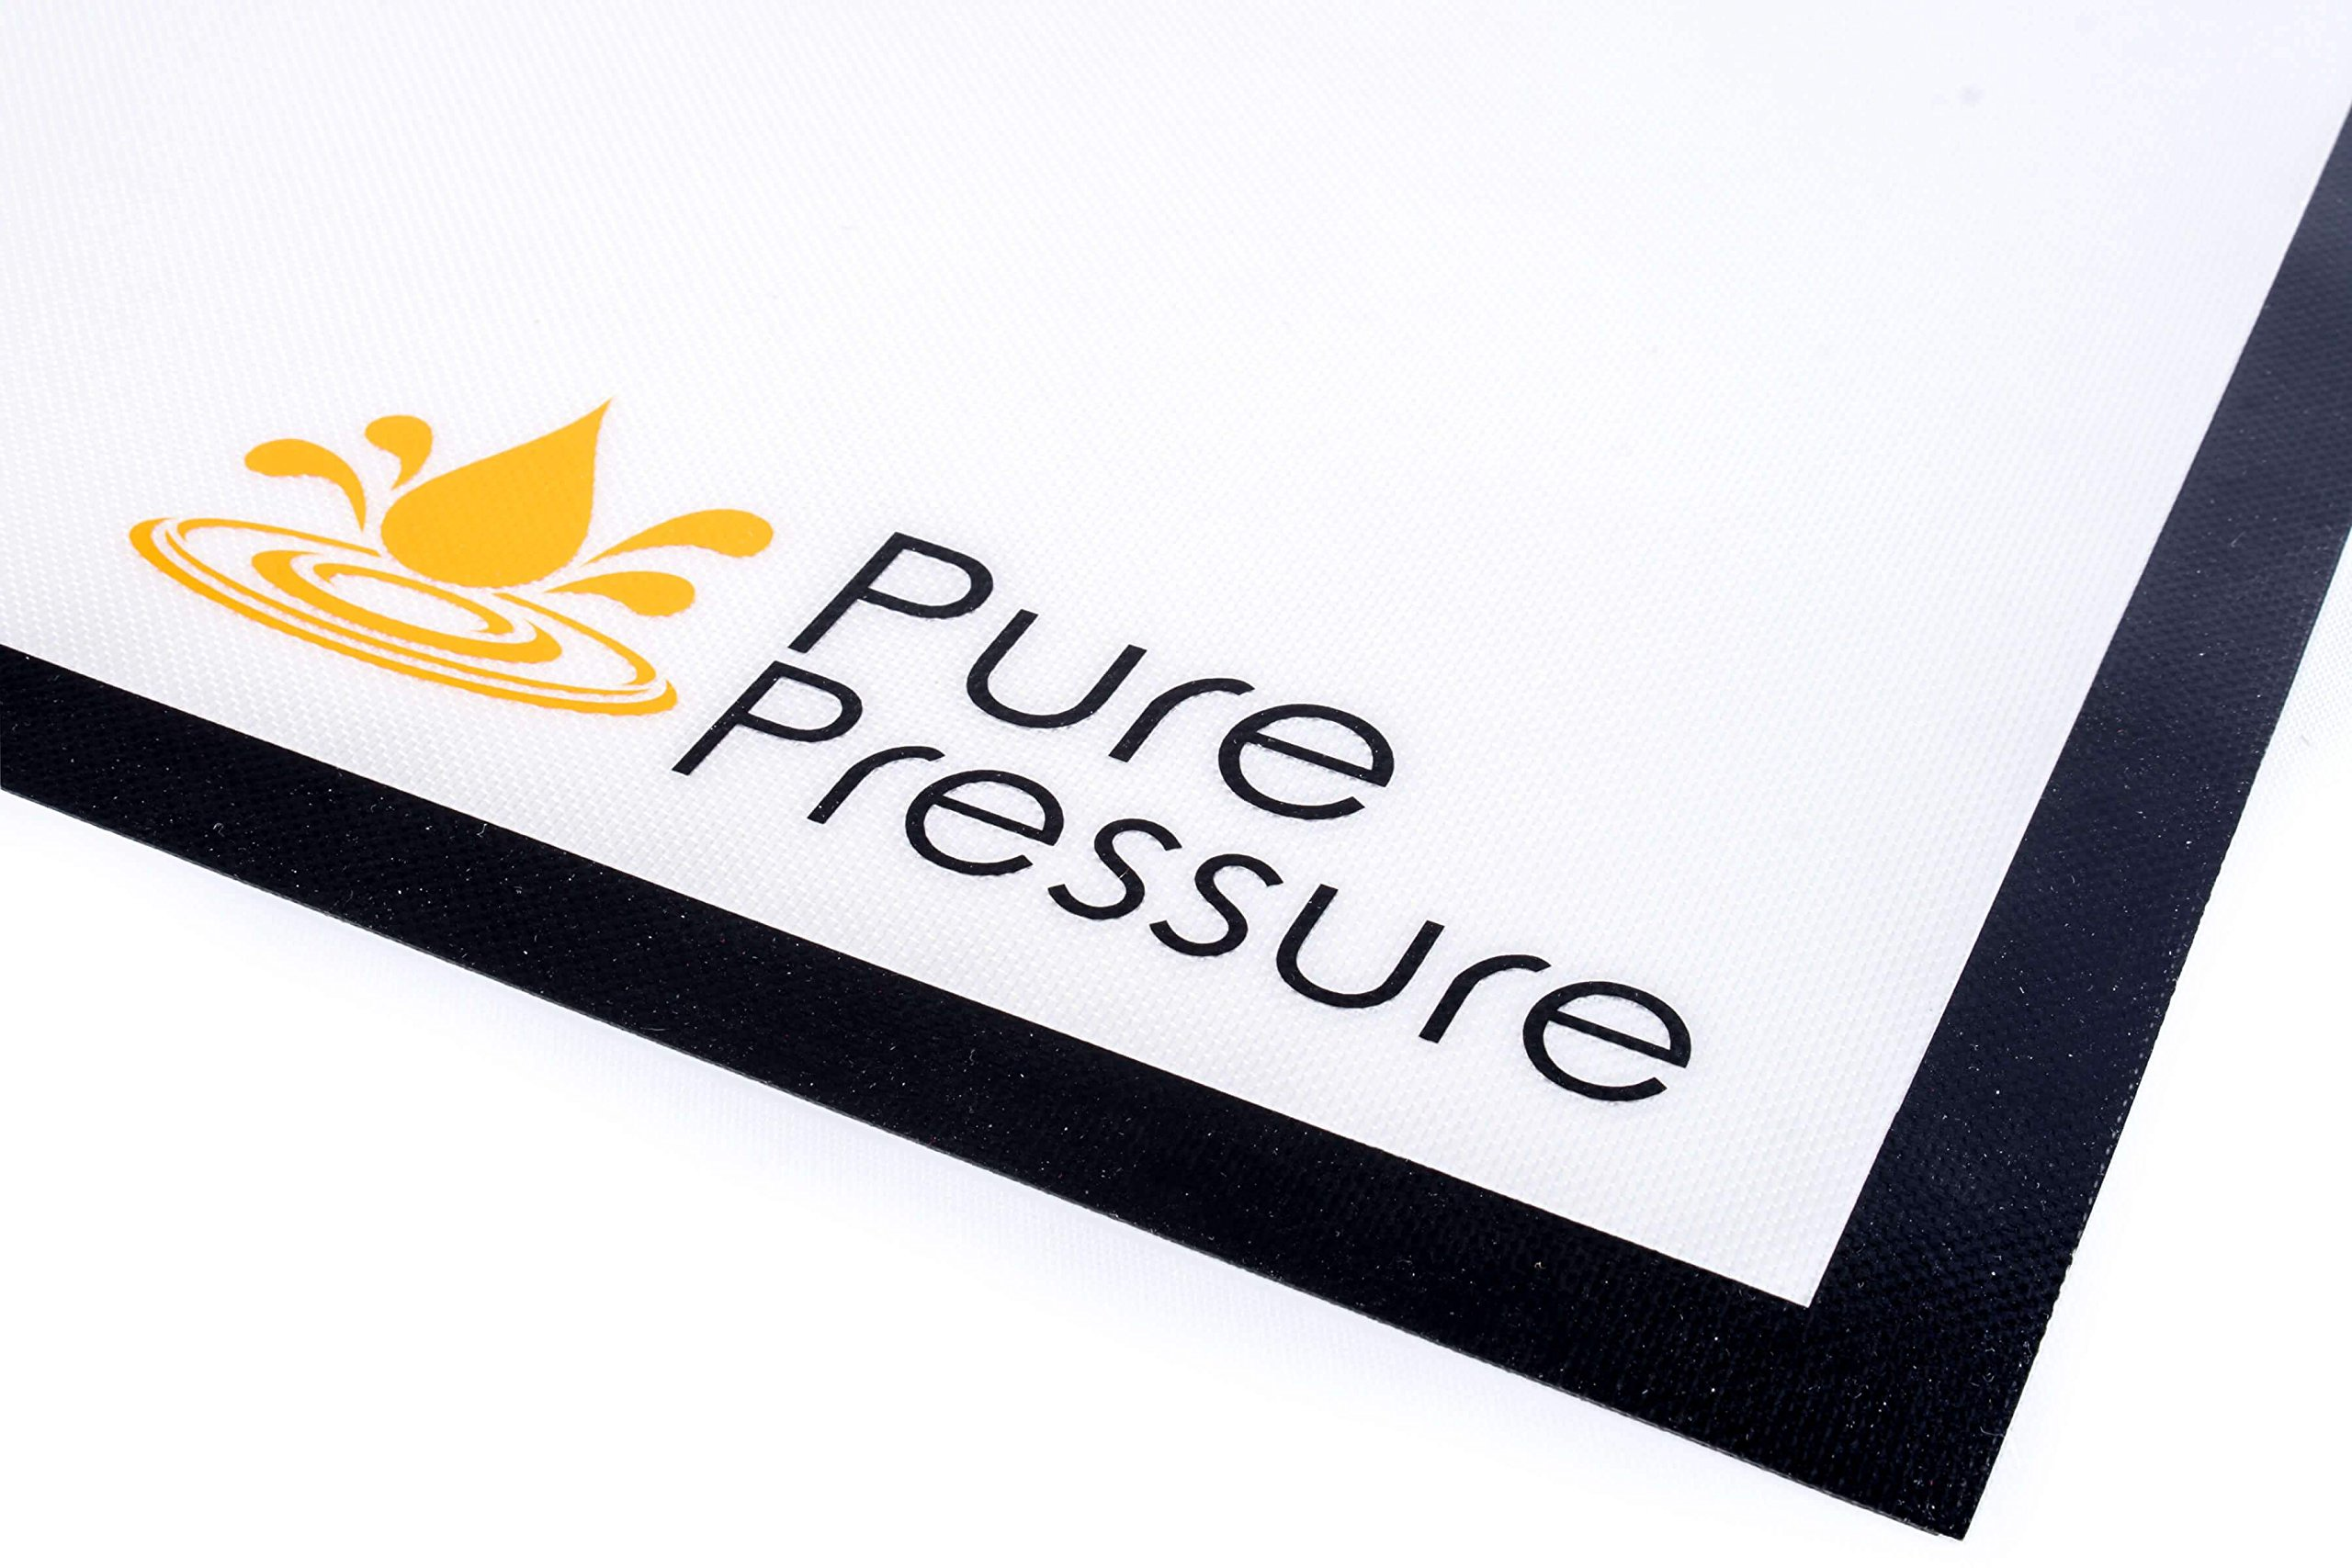 PurePressure Pure Pressure Large XL Silicone Dab Mat Wax Carving Baking Non Stick - Custom Logos and Colors! by PurePressure (Image #2)